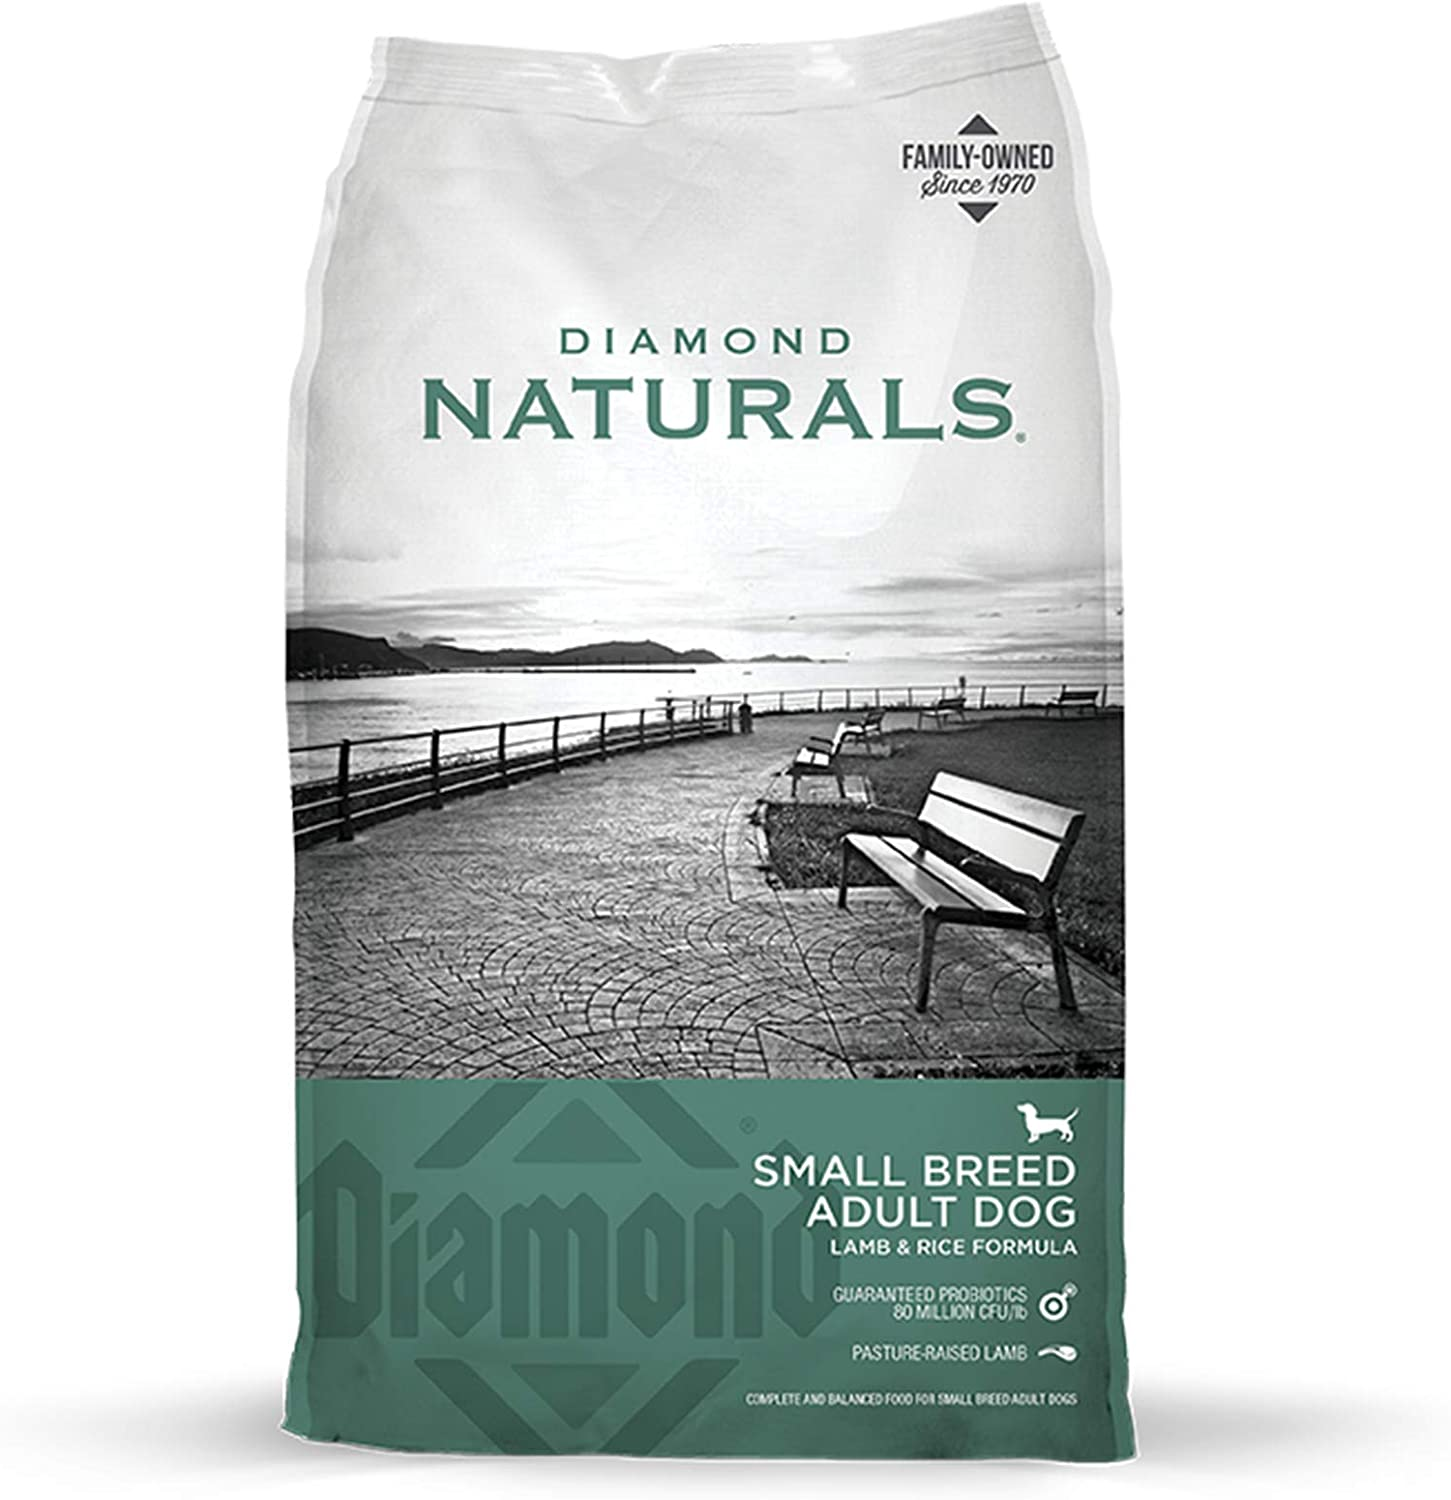 Diamond Naturals Dry Food for Adult Dogs, Small Breed Lamb and Rice Formula, 18 Pound Bag